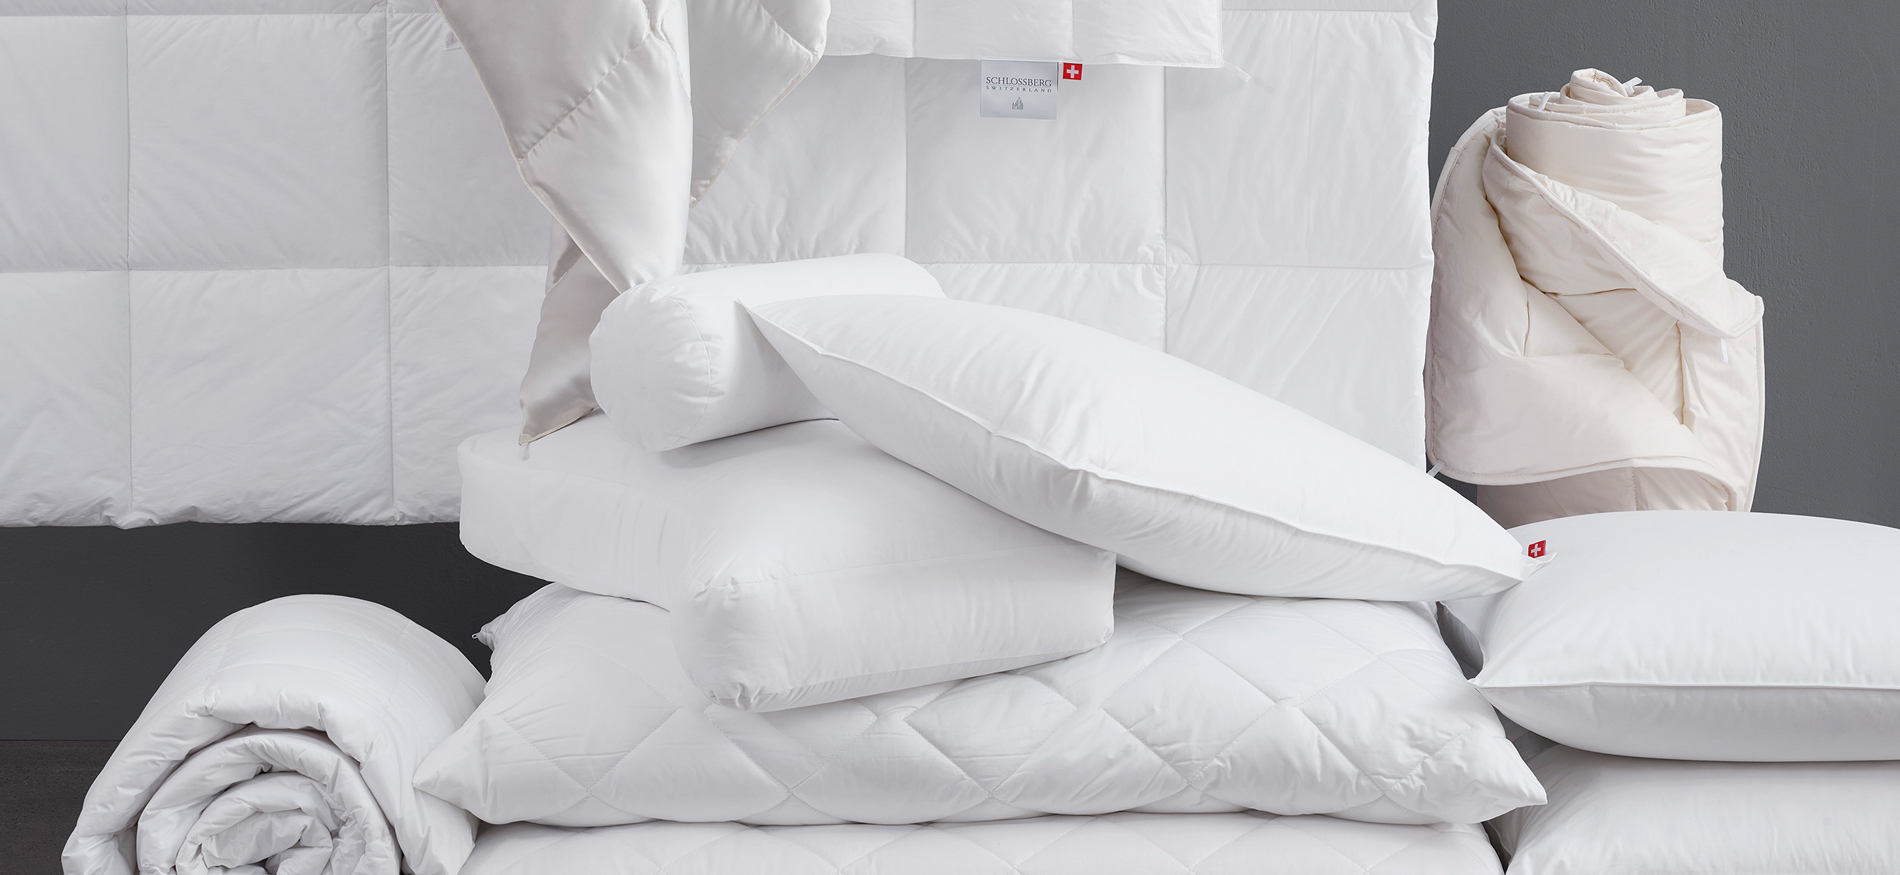 Schlossberg Duvets & Pillows